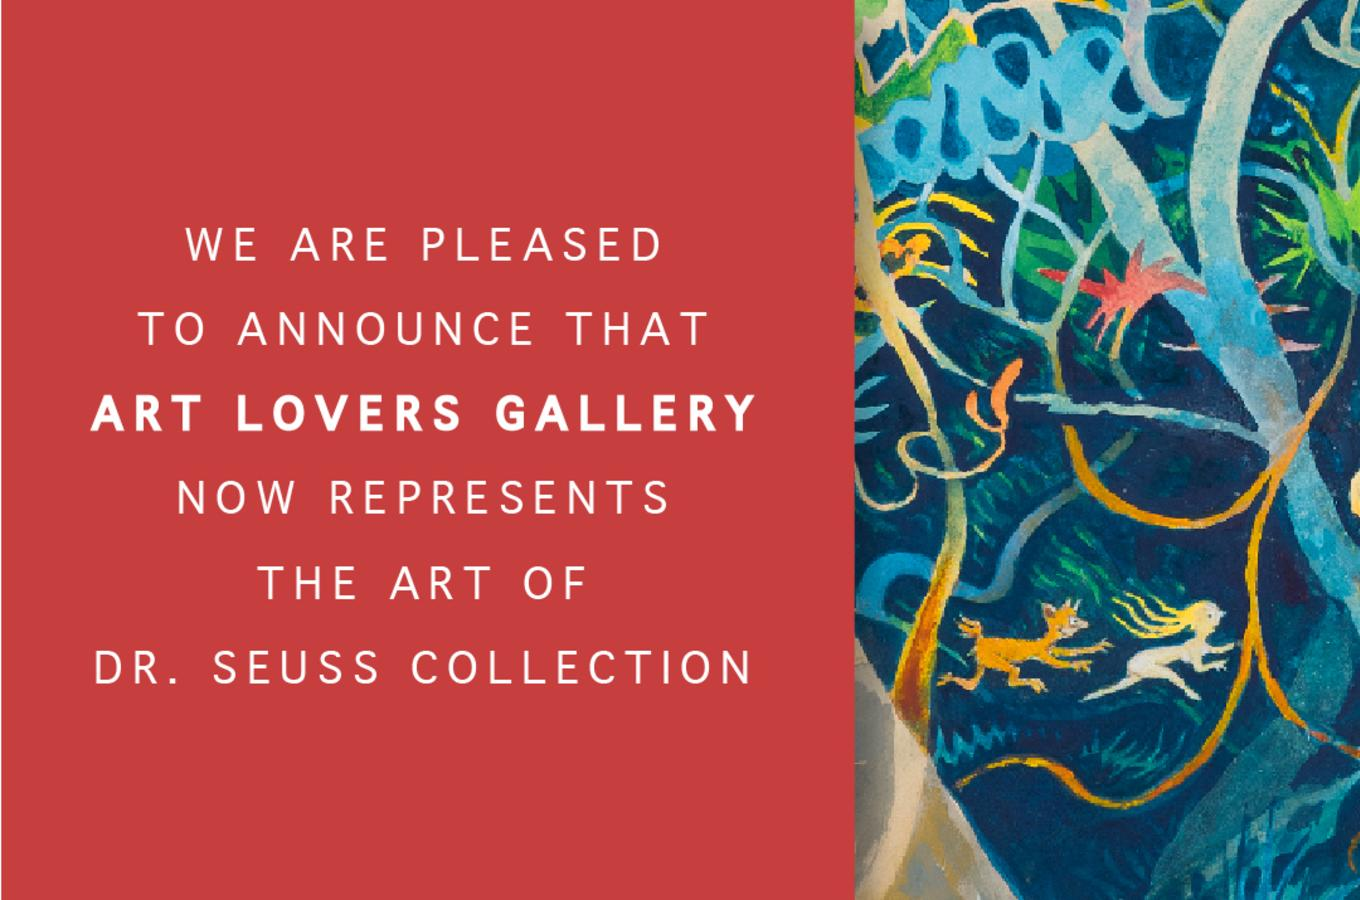 Art Lovers Gallery Represents The Art of Dr. Seuss Collections!